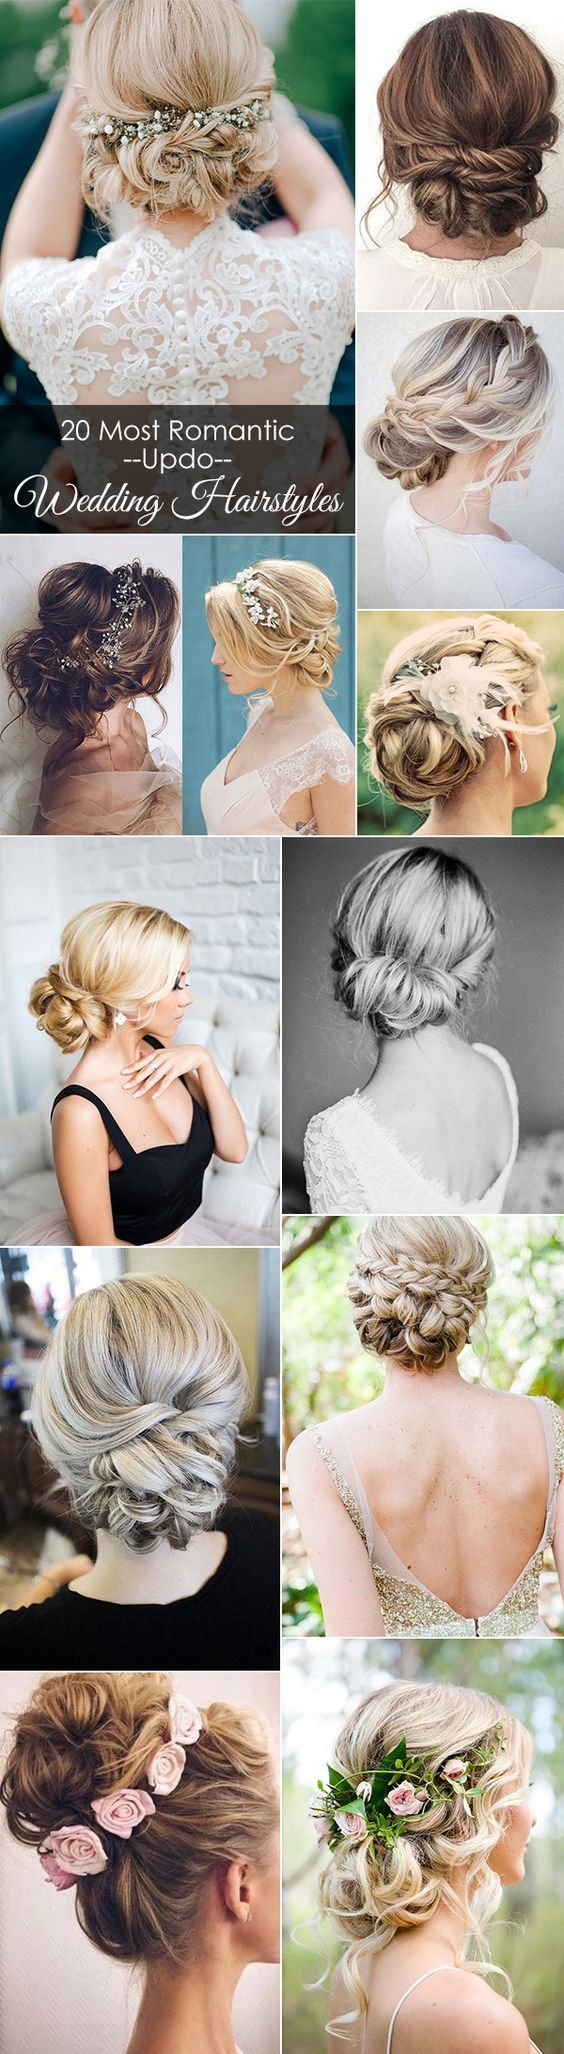 best bridal hair with veil updo images on pinterest wedding